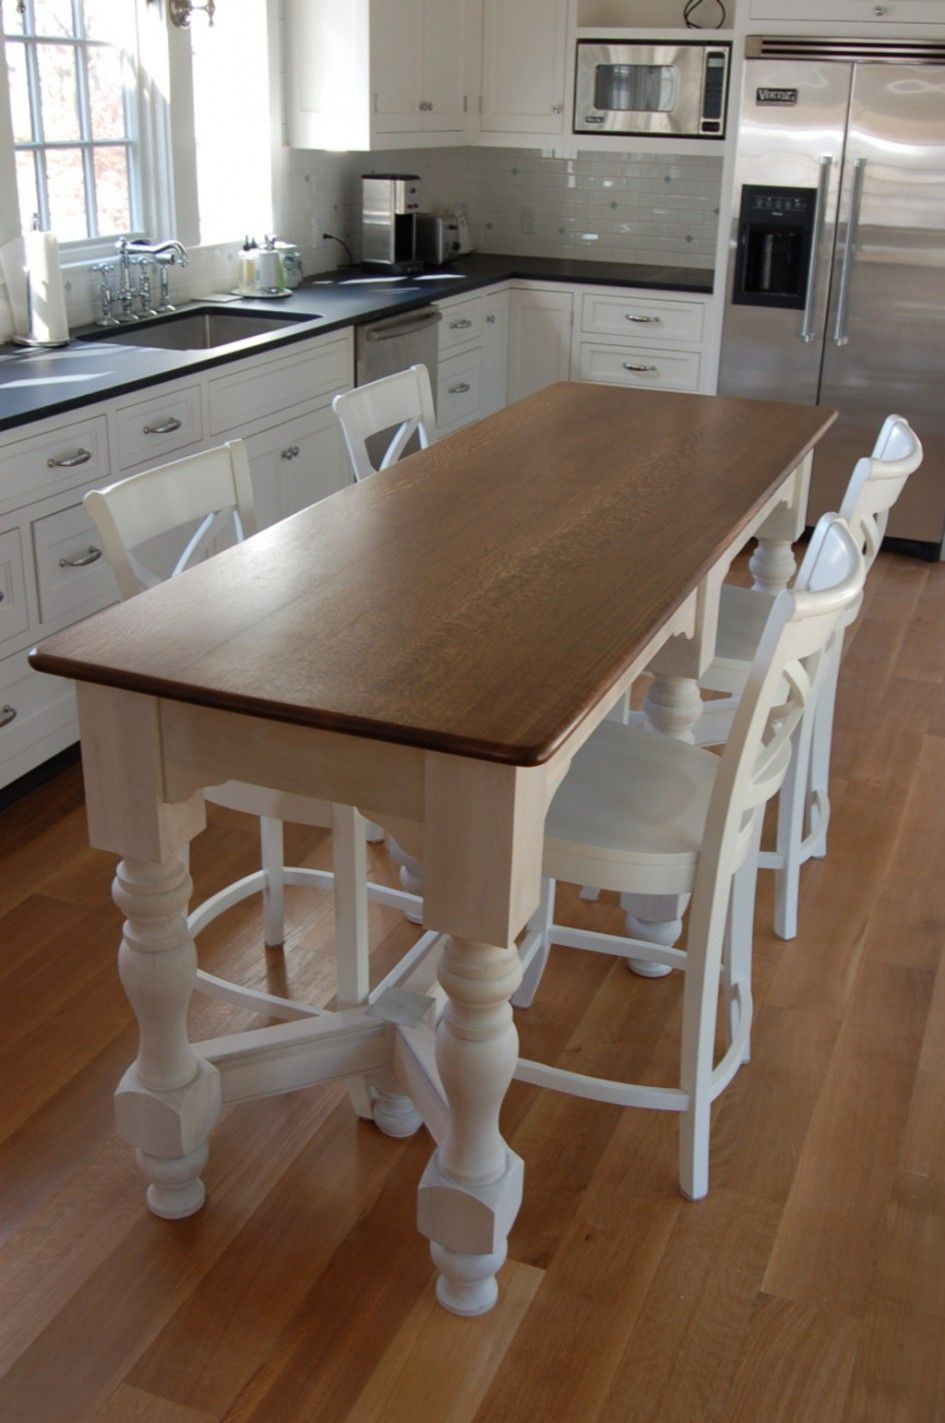 kitchen island tables Your small family could gather at dinner time happily around this narrow kitchen island